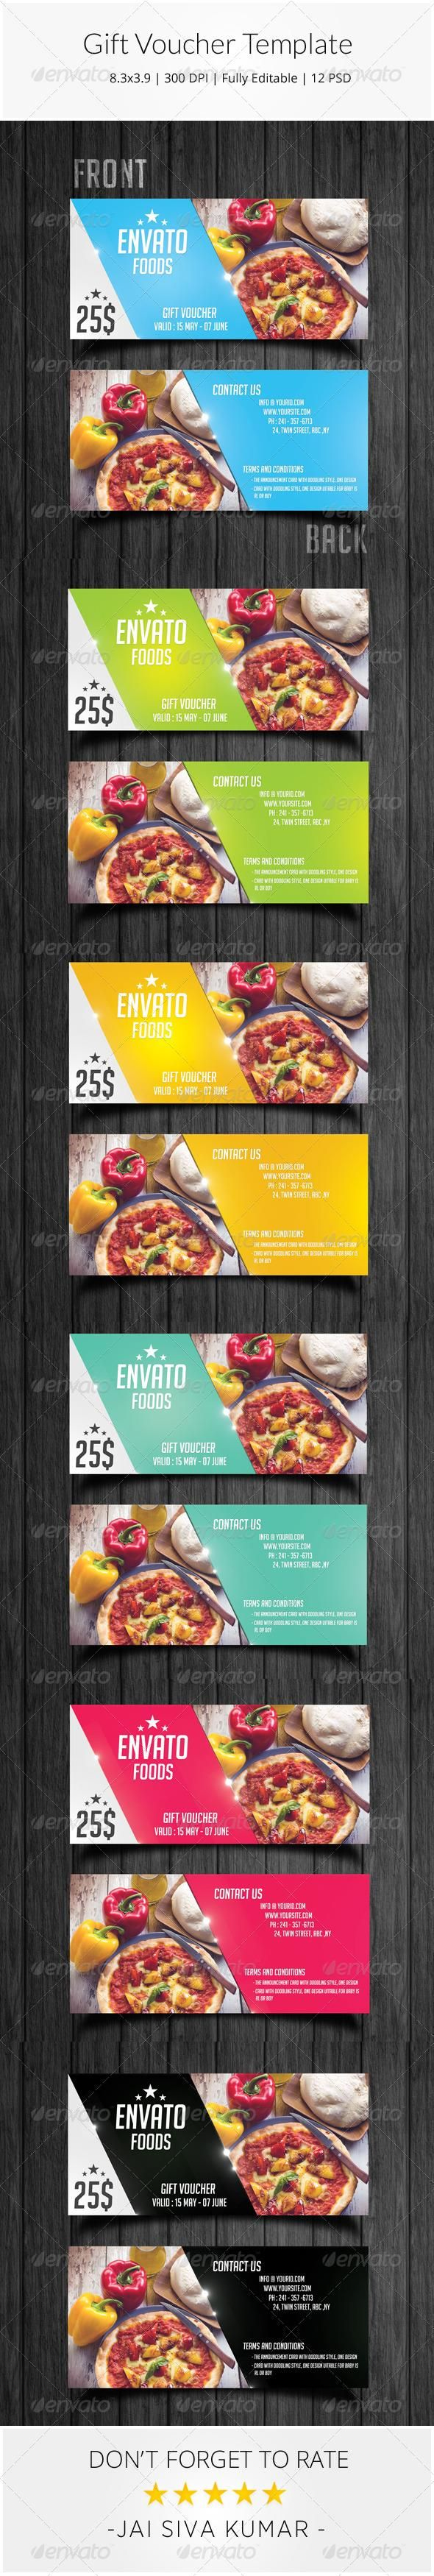 Gift Voucher Template #template #cards #print #invites